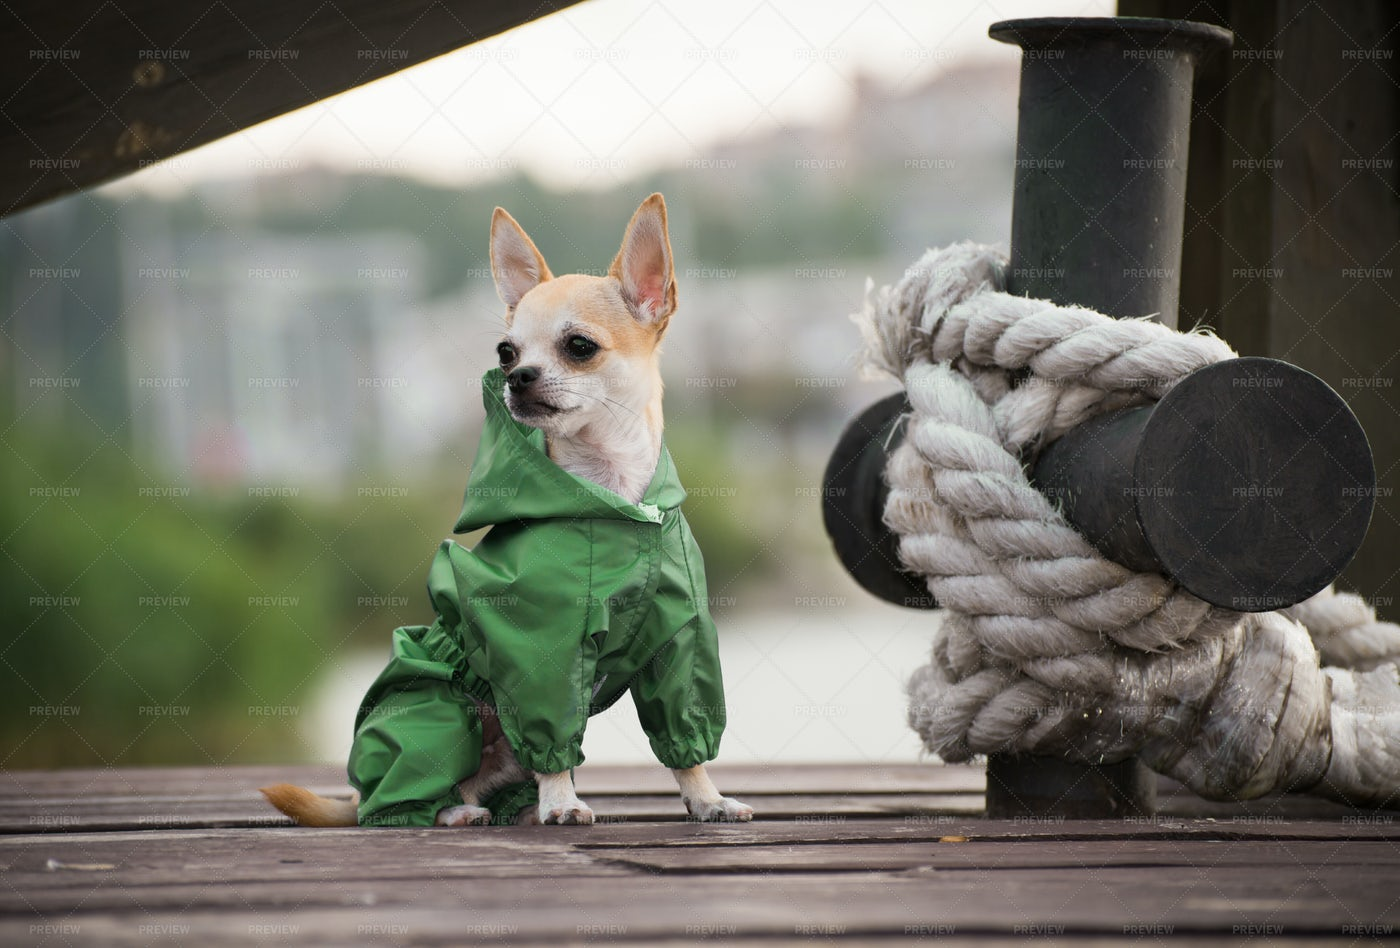 Chihuahua In Green Overalls: Stock Photos